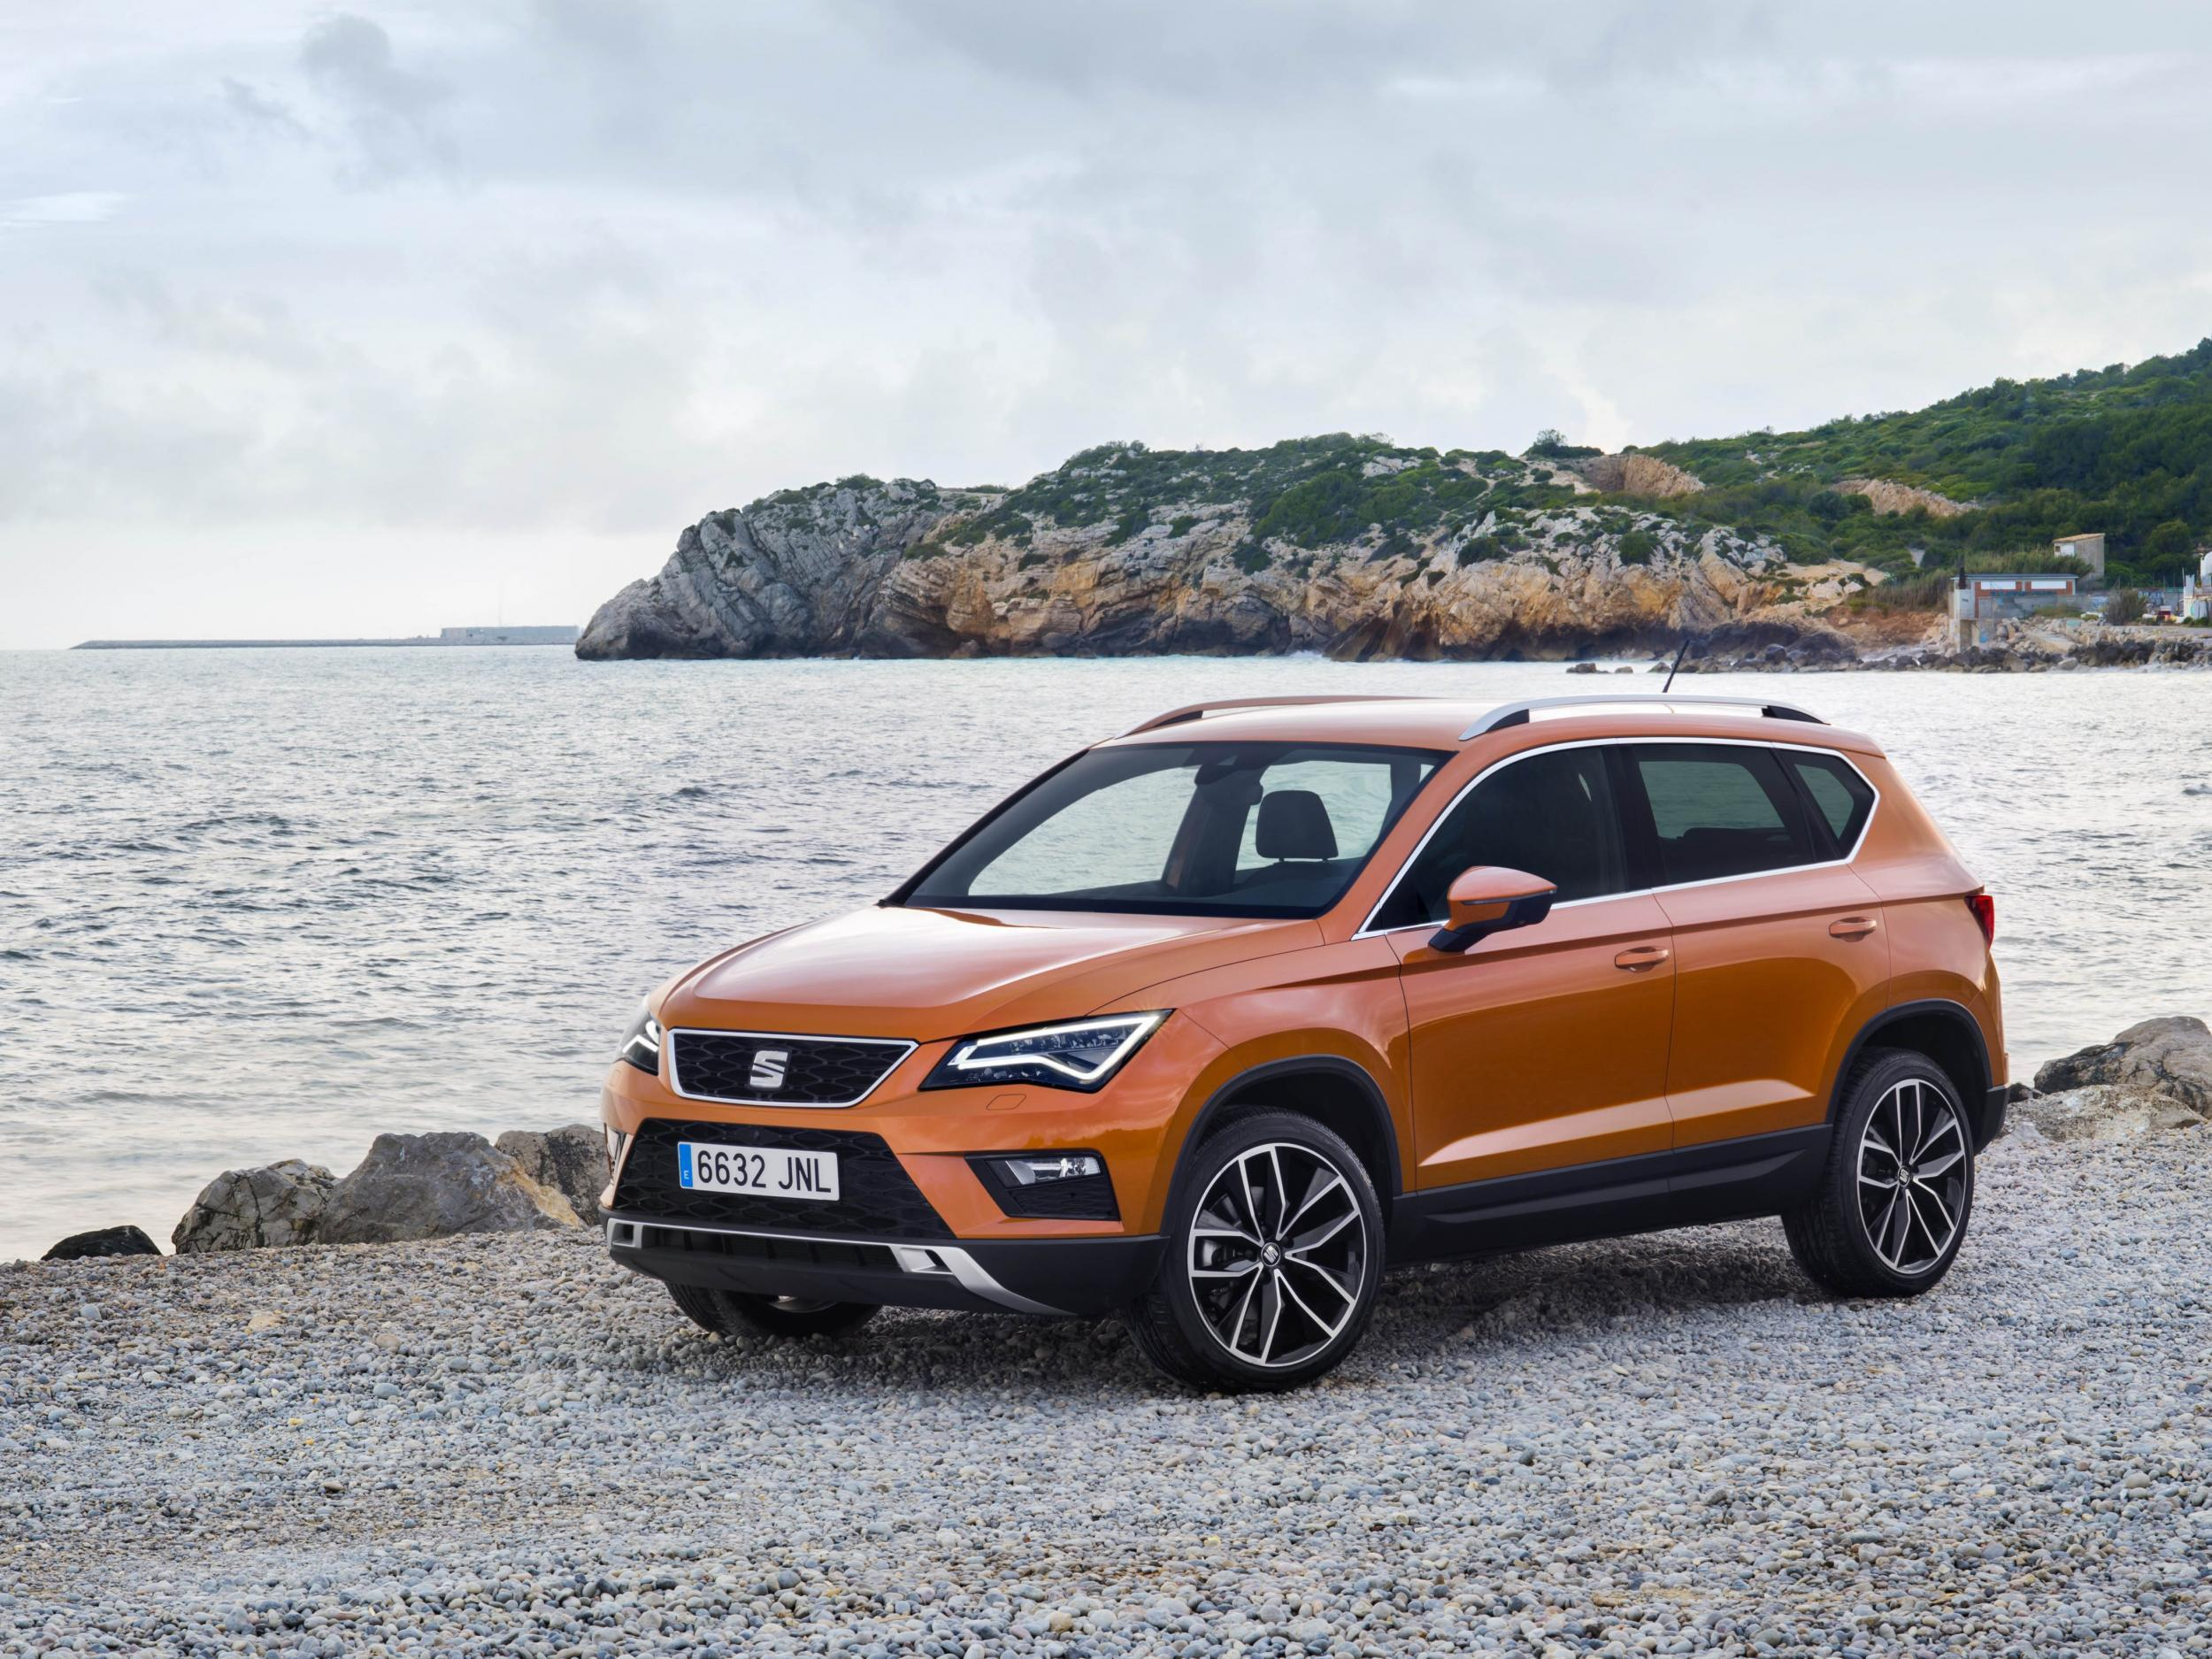 Seat ateca car review a car for modern parents with proper four wheel drive the independent